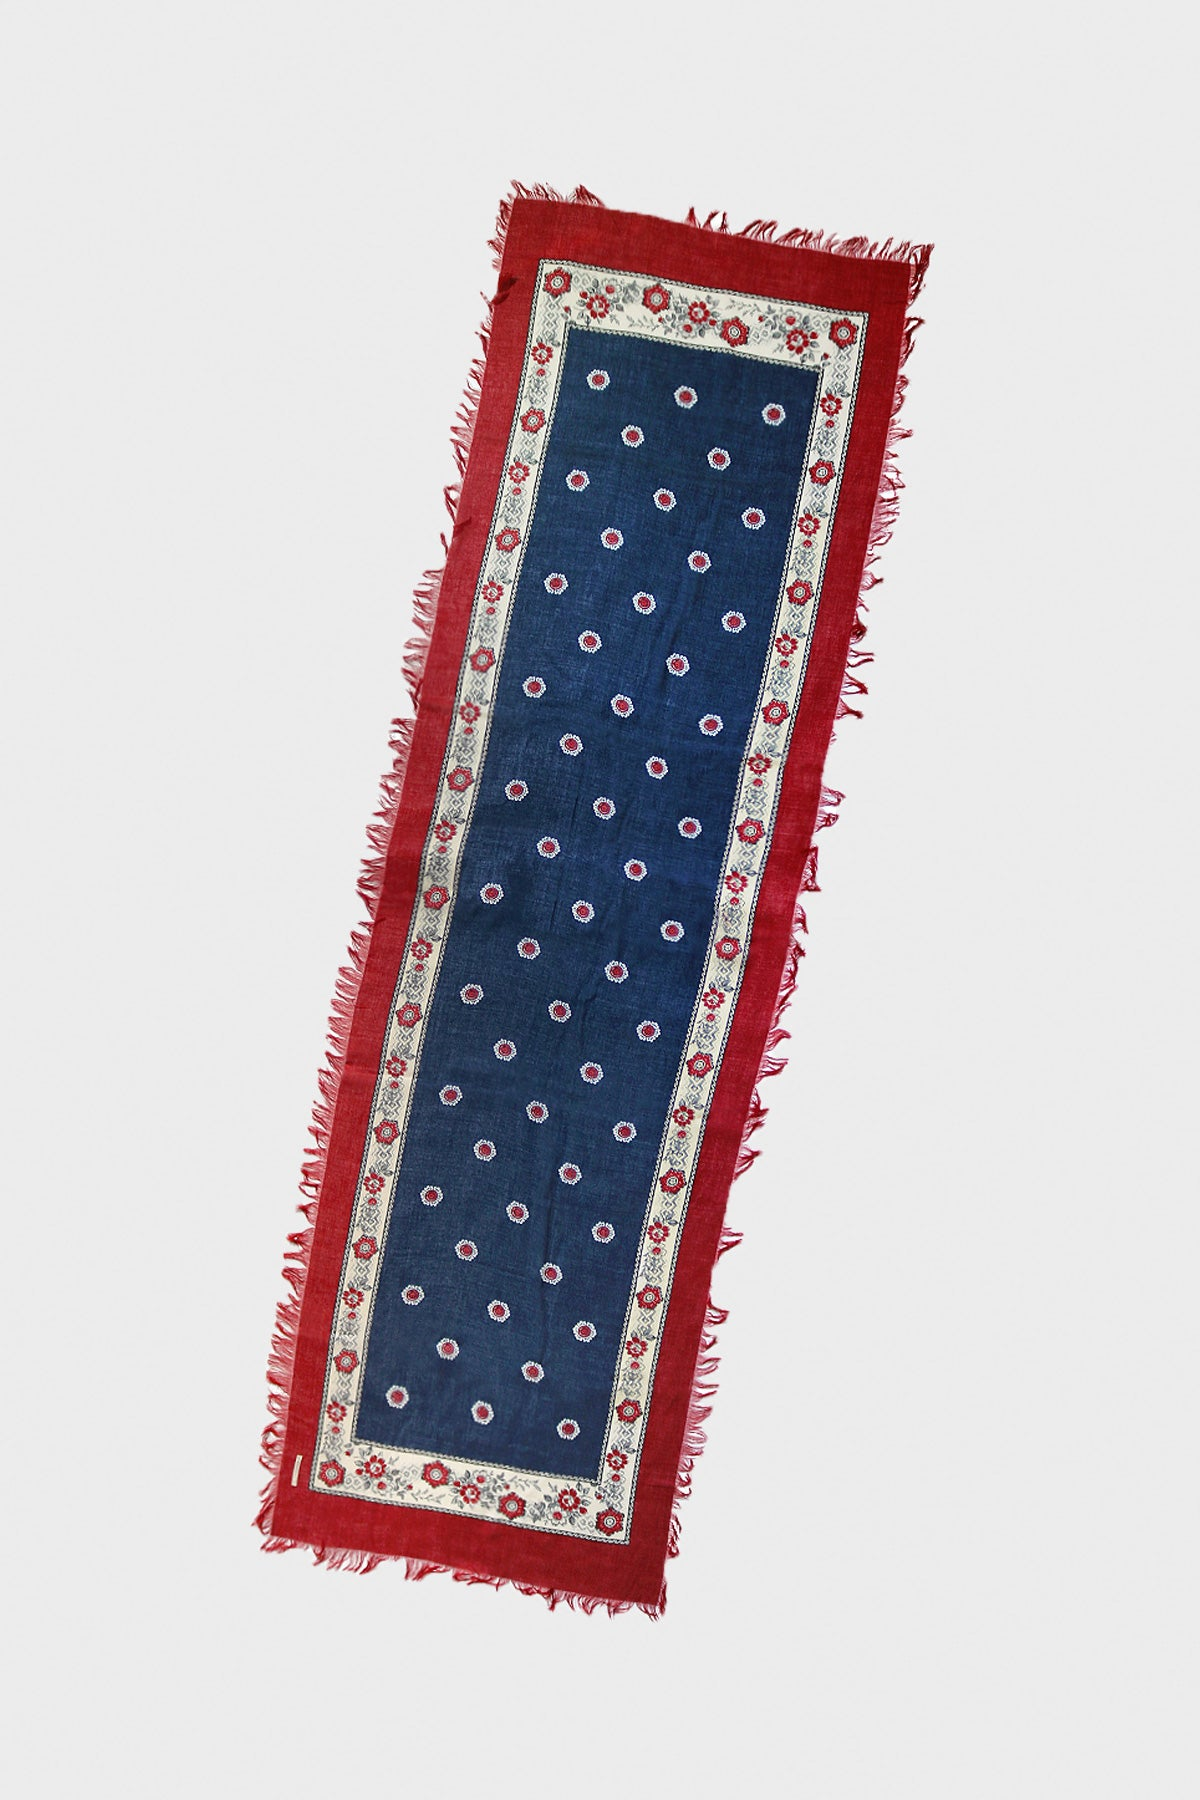 Kapital - Rayon ROCKWELL Fringed Stole - Red - Canoe Club